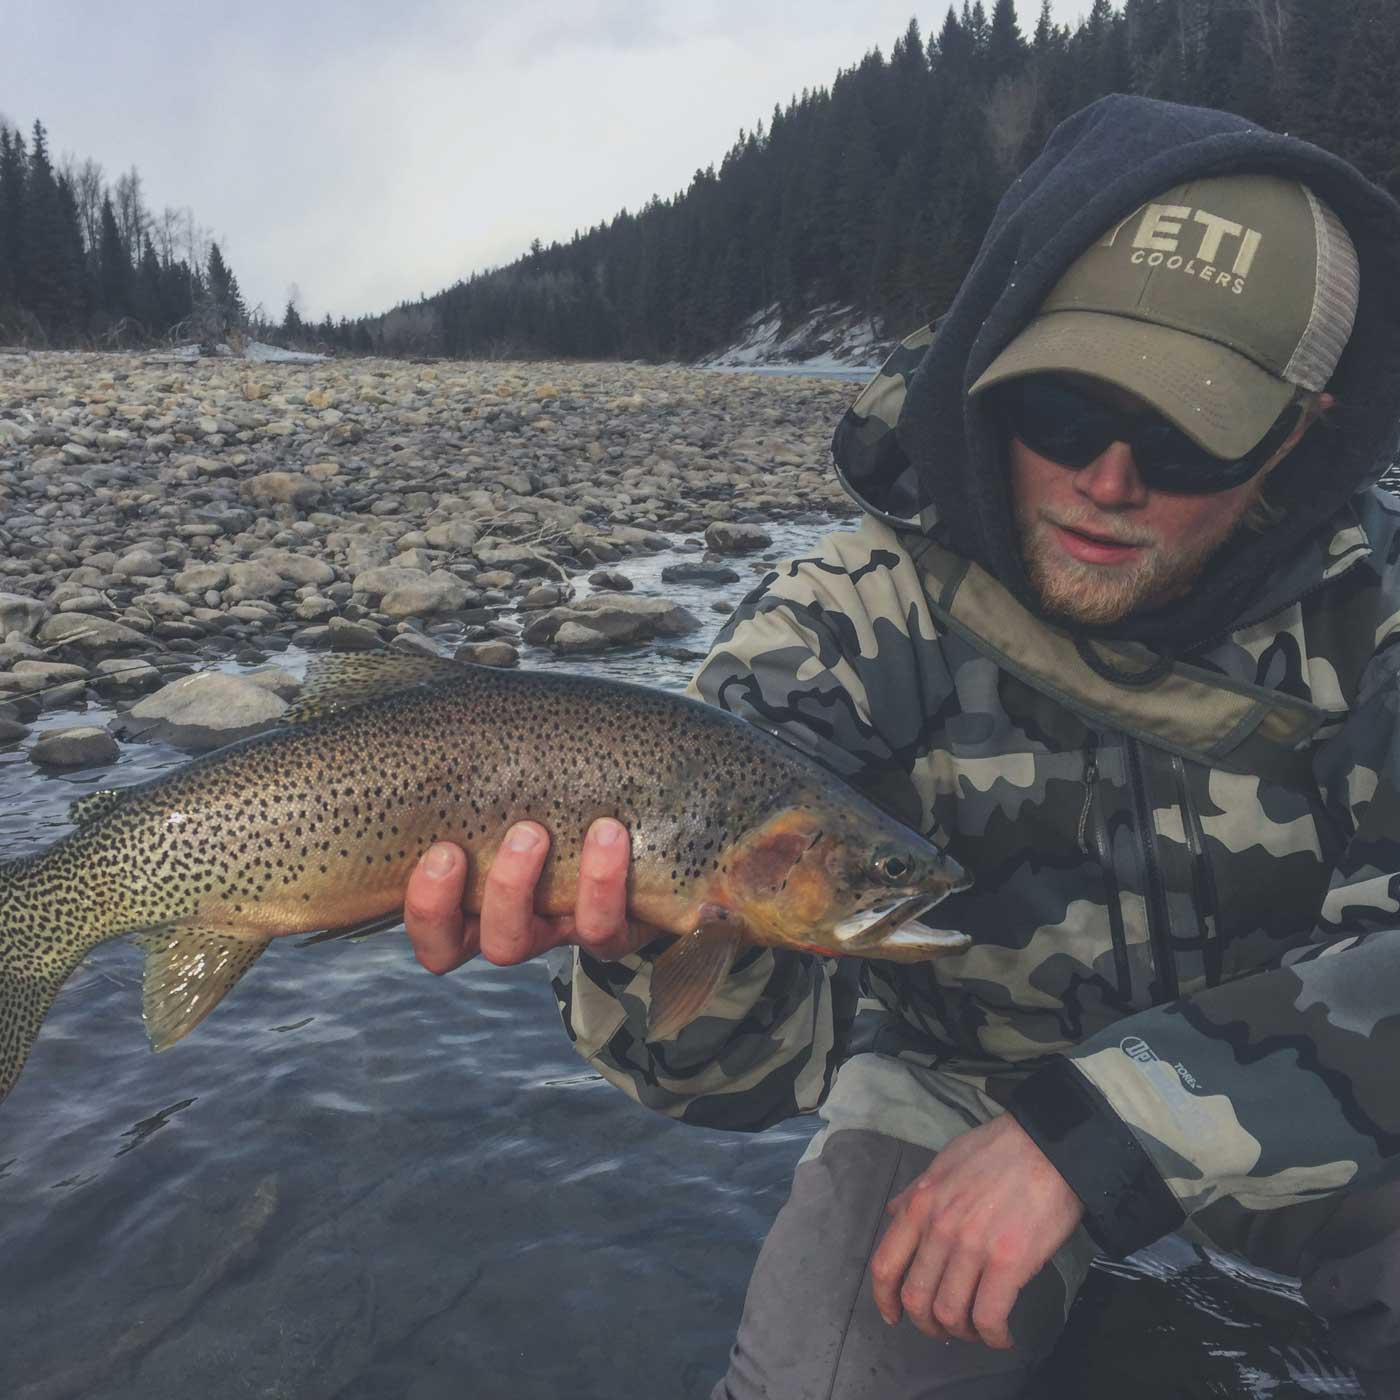 Fly Fishing Guide Curtis Hall in Fernie, BC